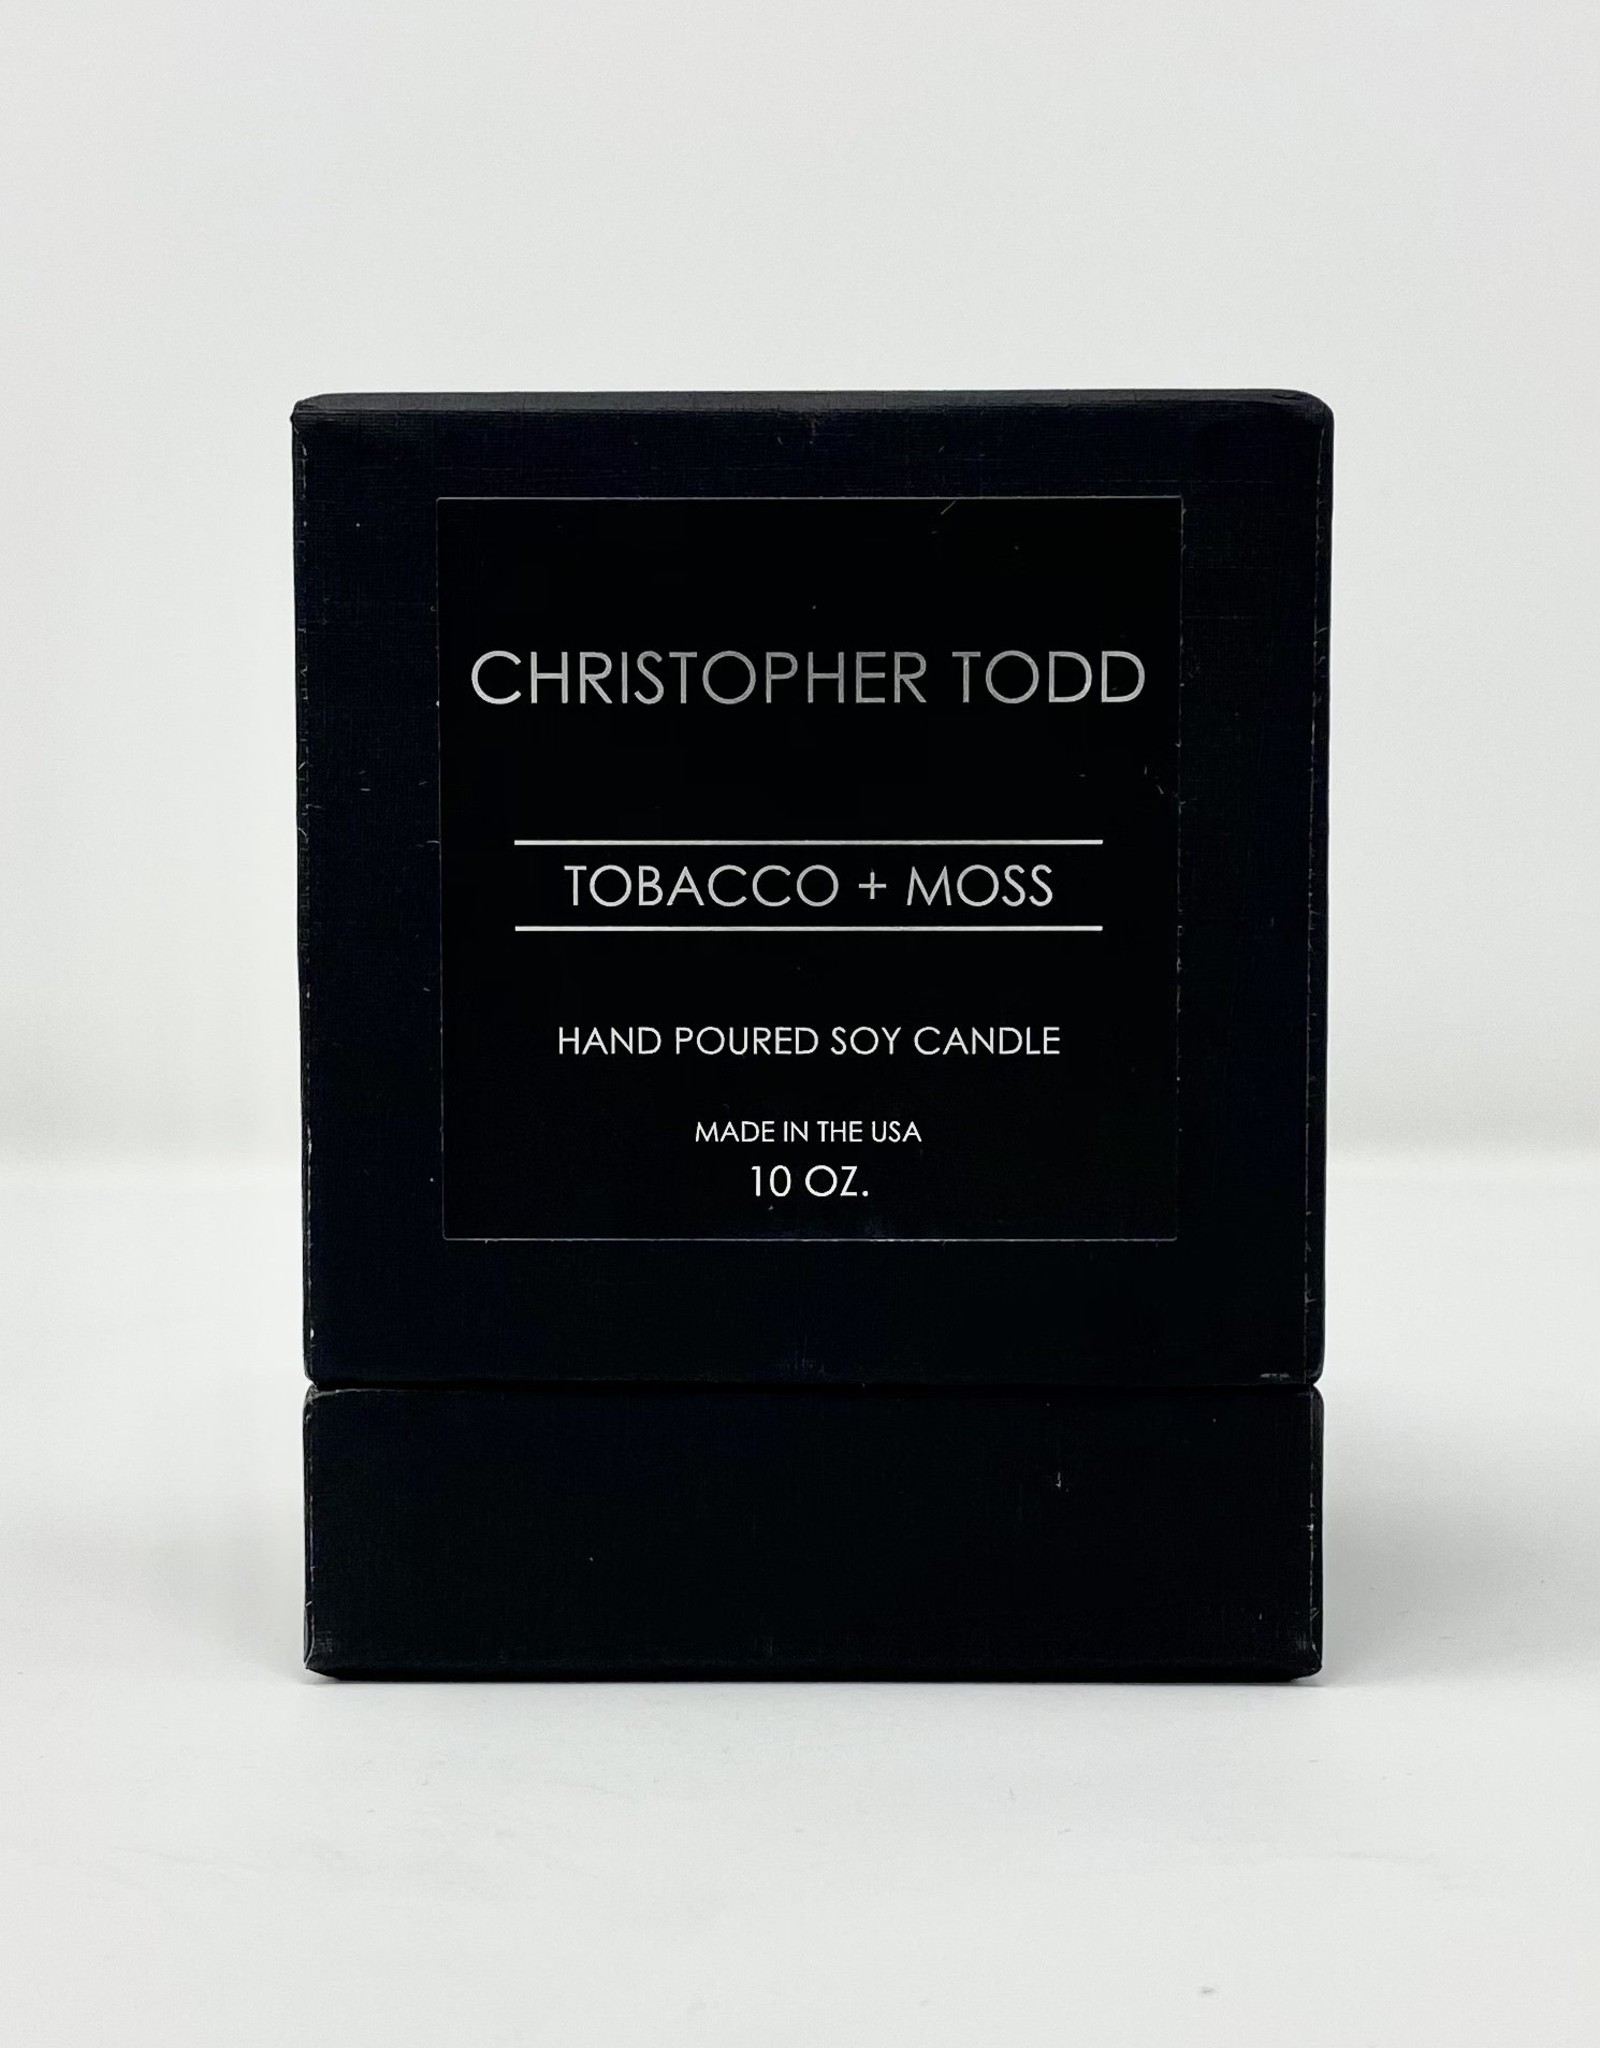 Greenmarket Purveying Co Tobacco + Moss Christopher Todd Candle